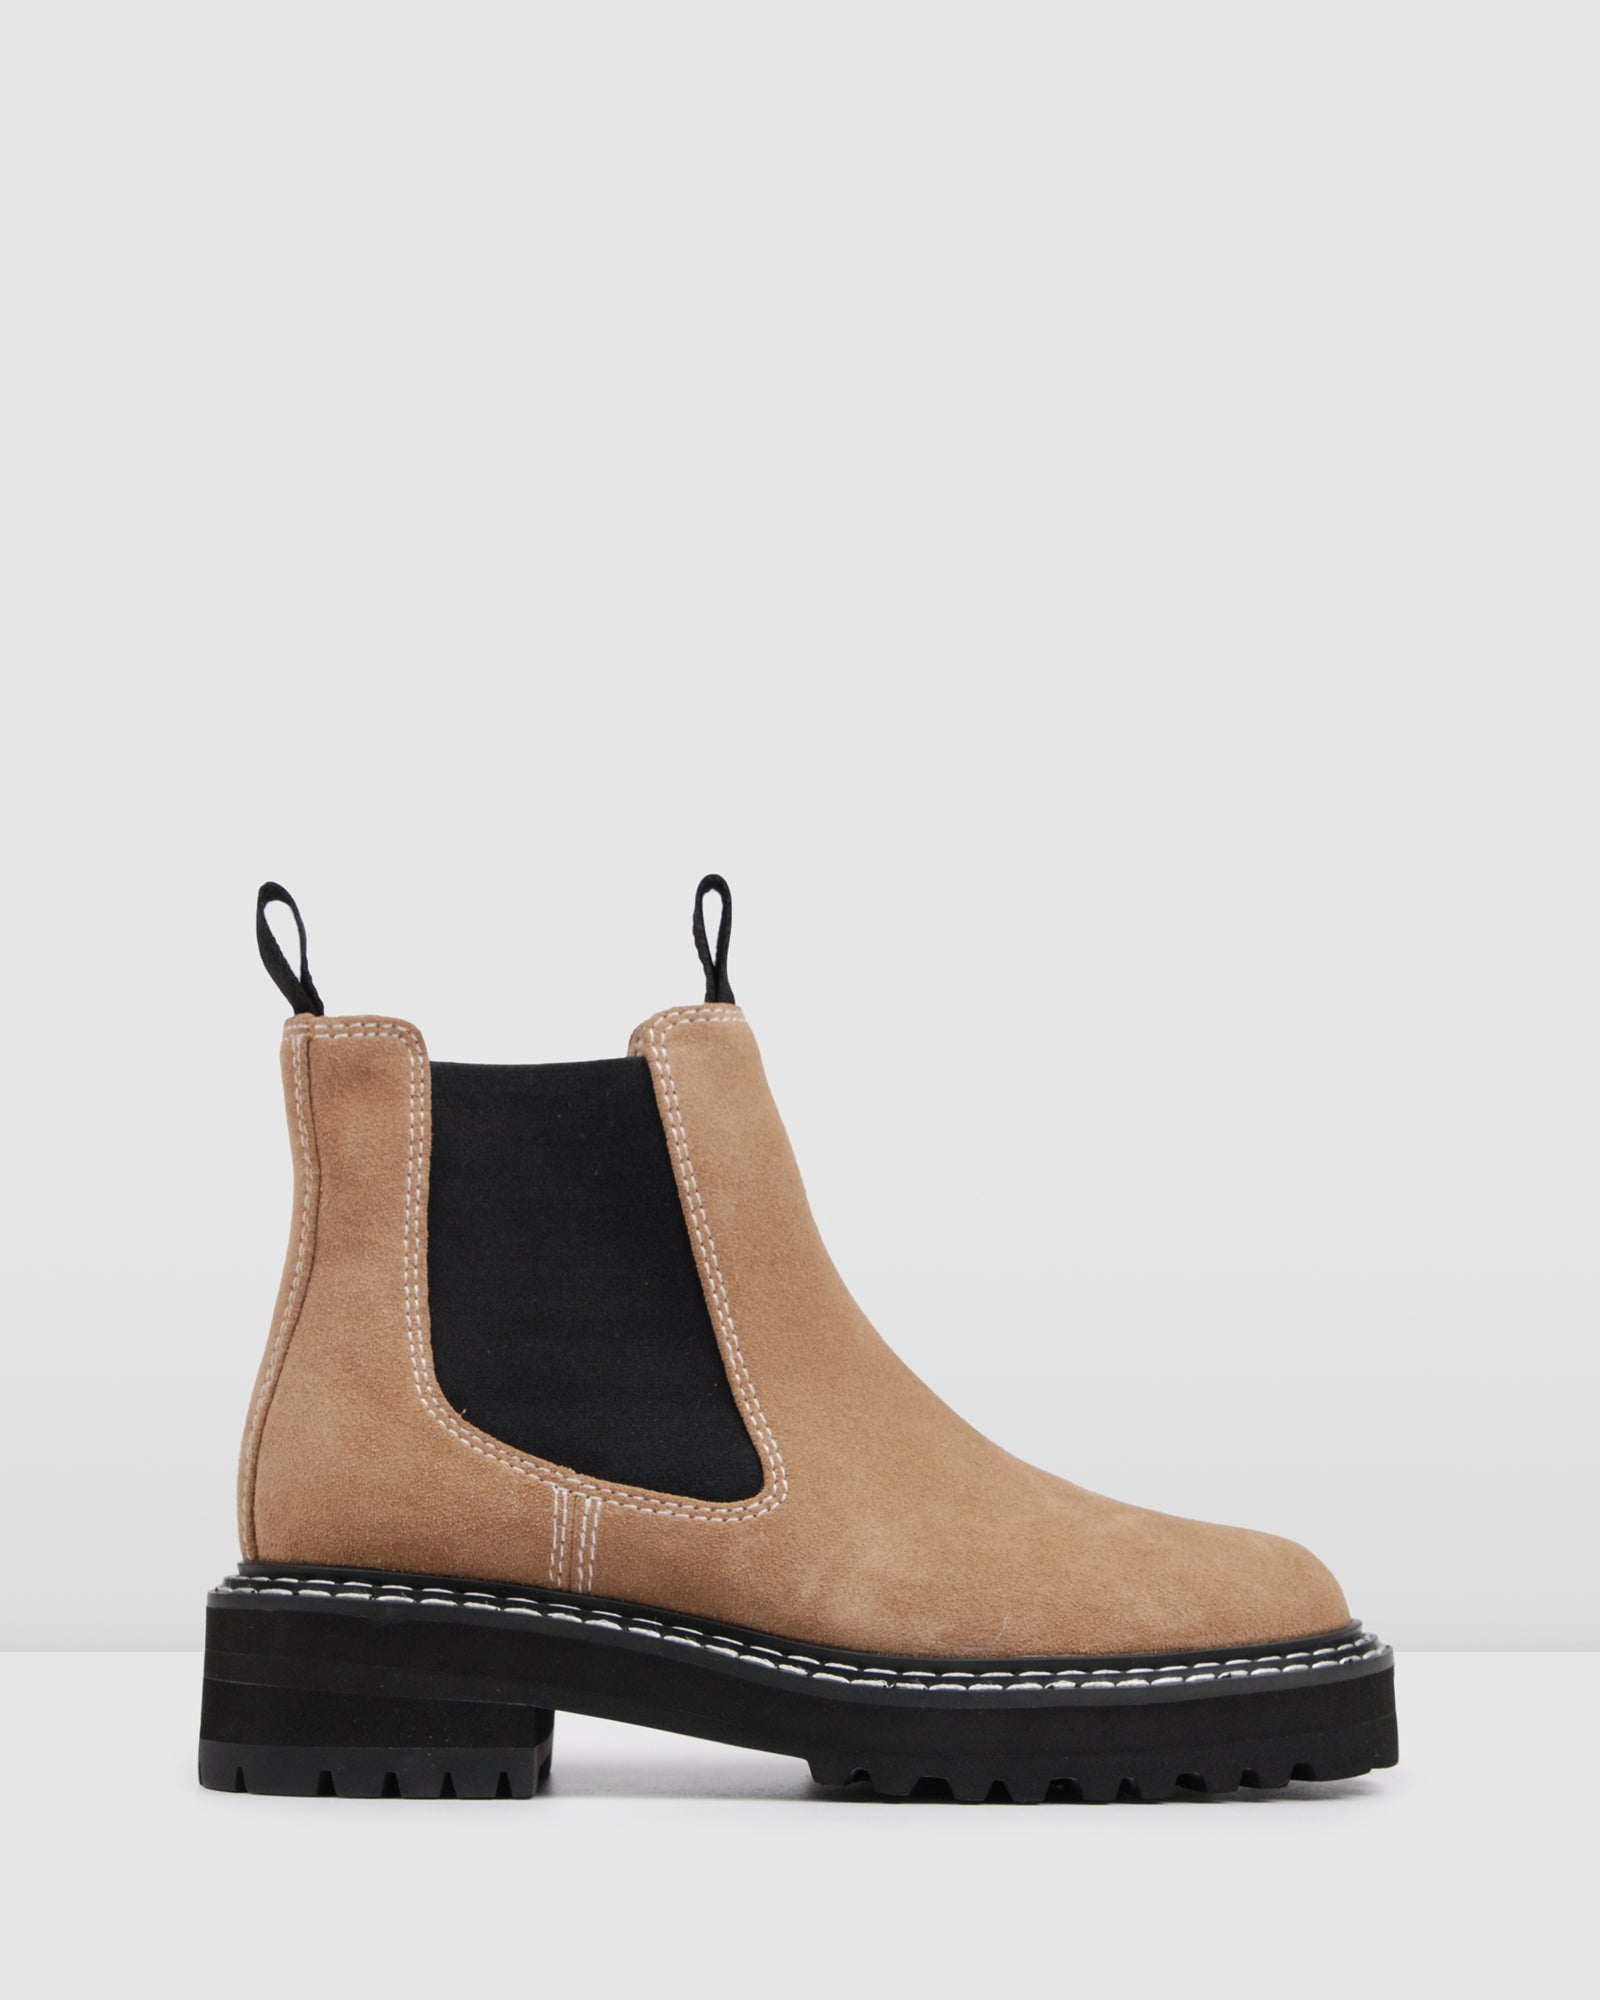 RALEIGH FLAT ANKLE BOOTS NATURAL SUEDE